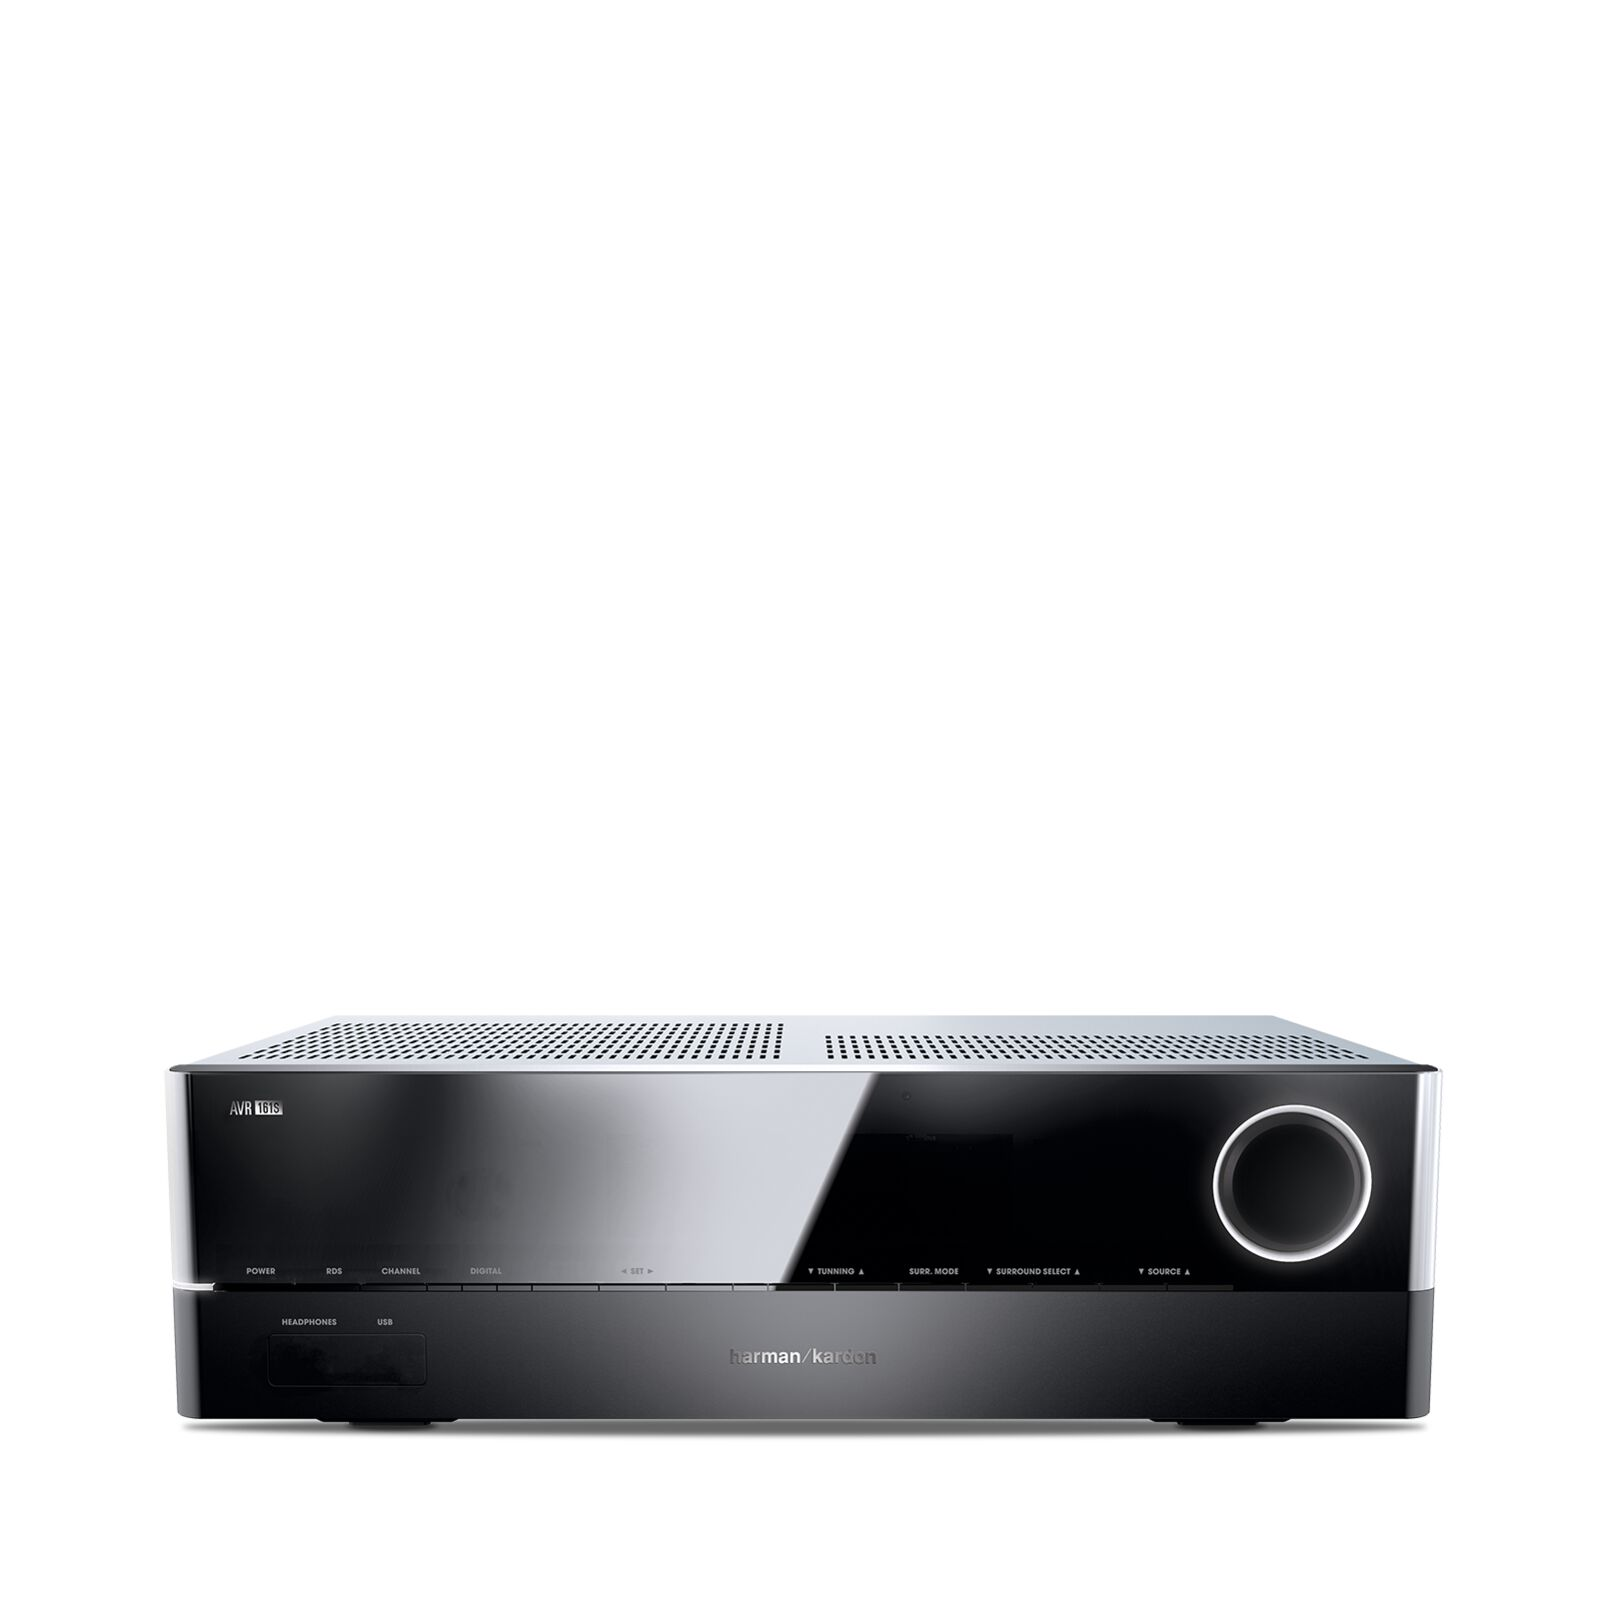 Image of 5.1 AV-receiver Harman Kardon AVR 161S 5x85 W Zwart 4K UltraHD, Bluetooth, DLNA, Internetradio, USB